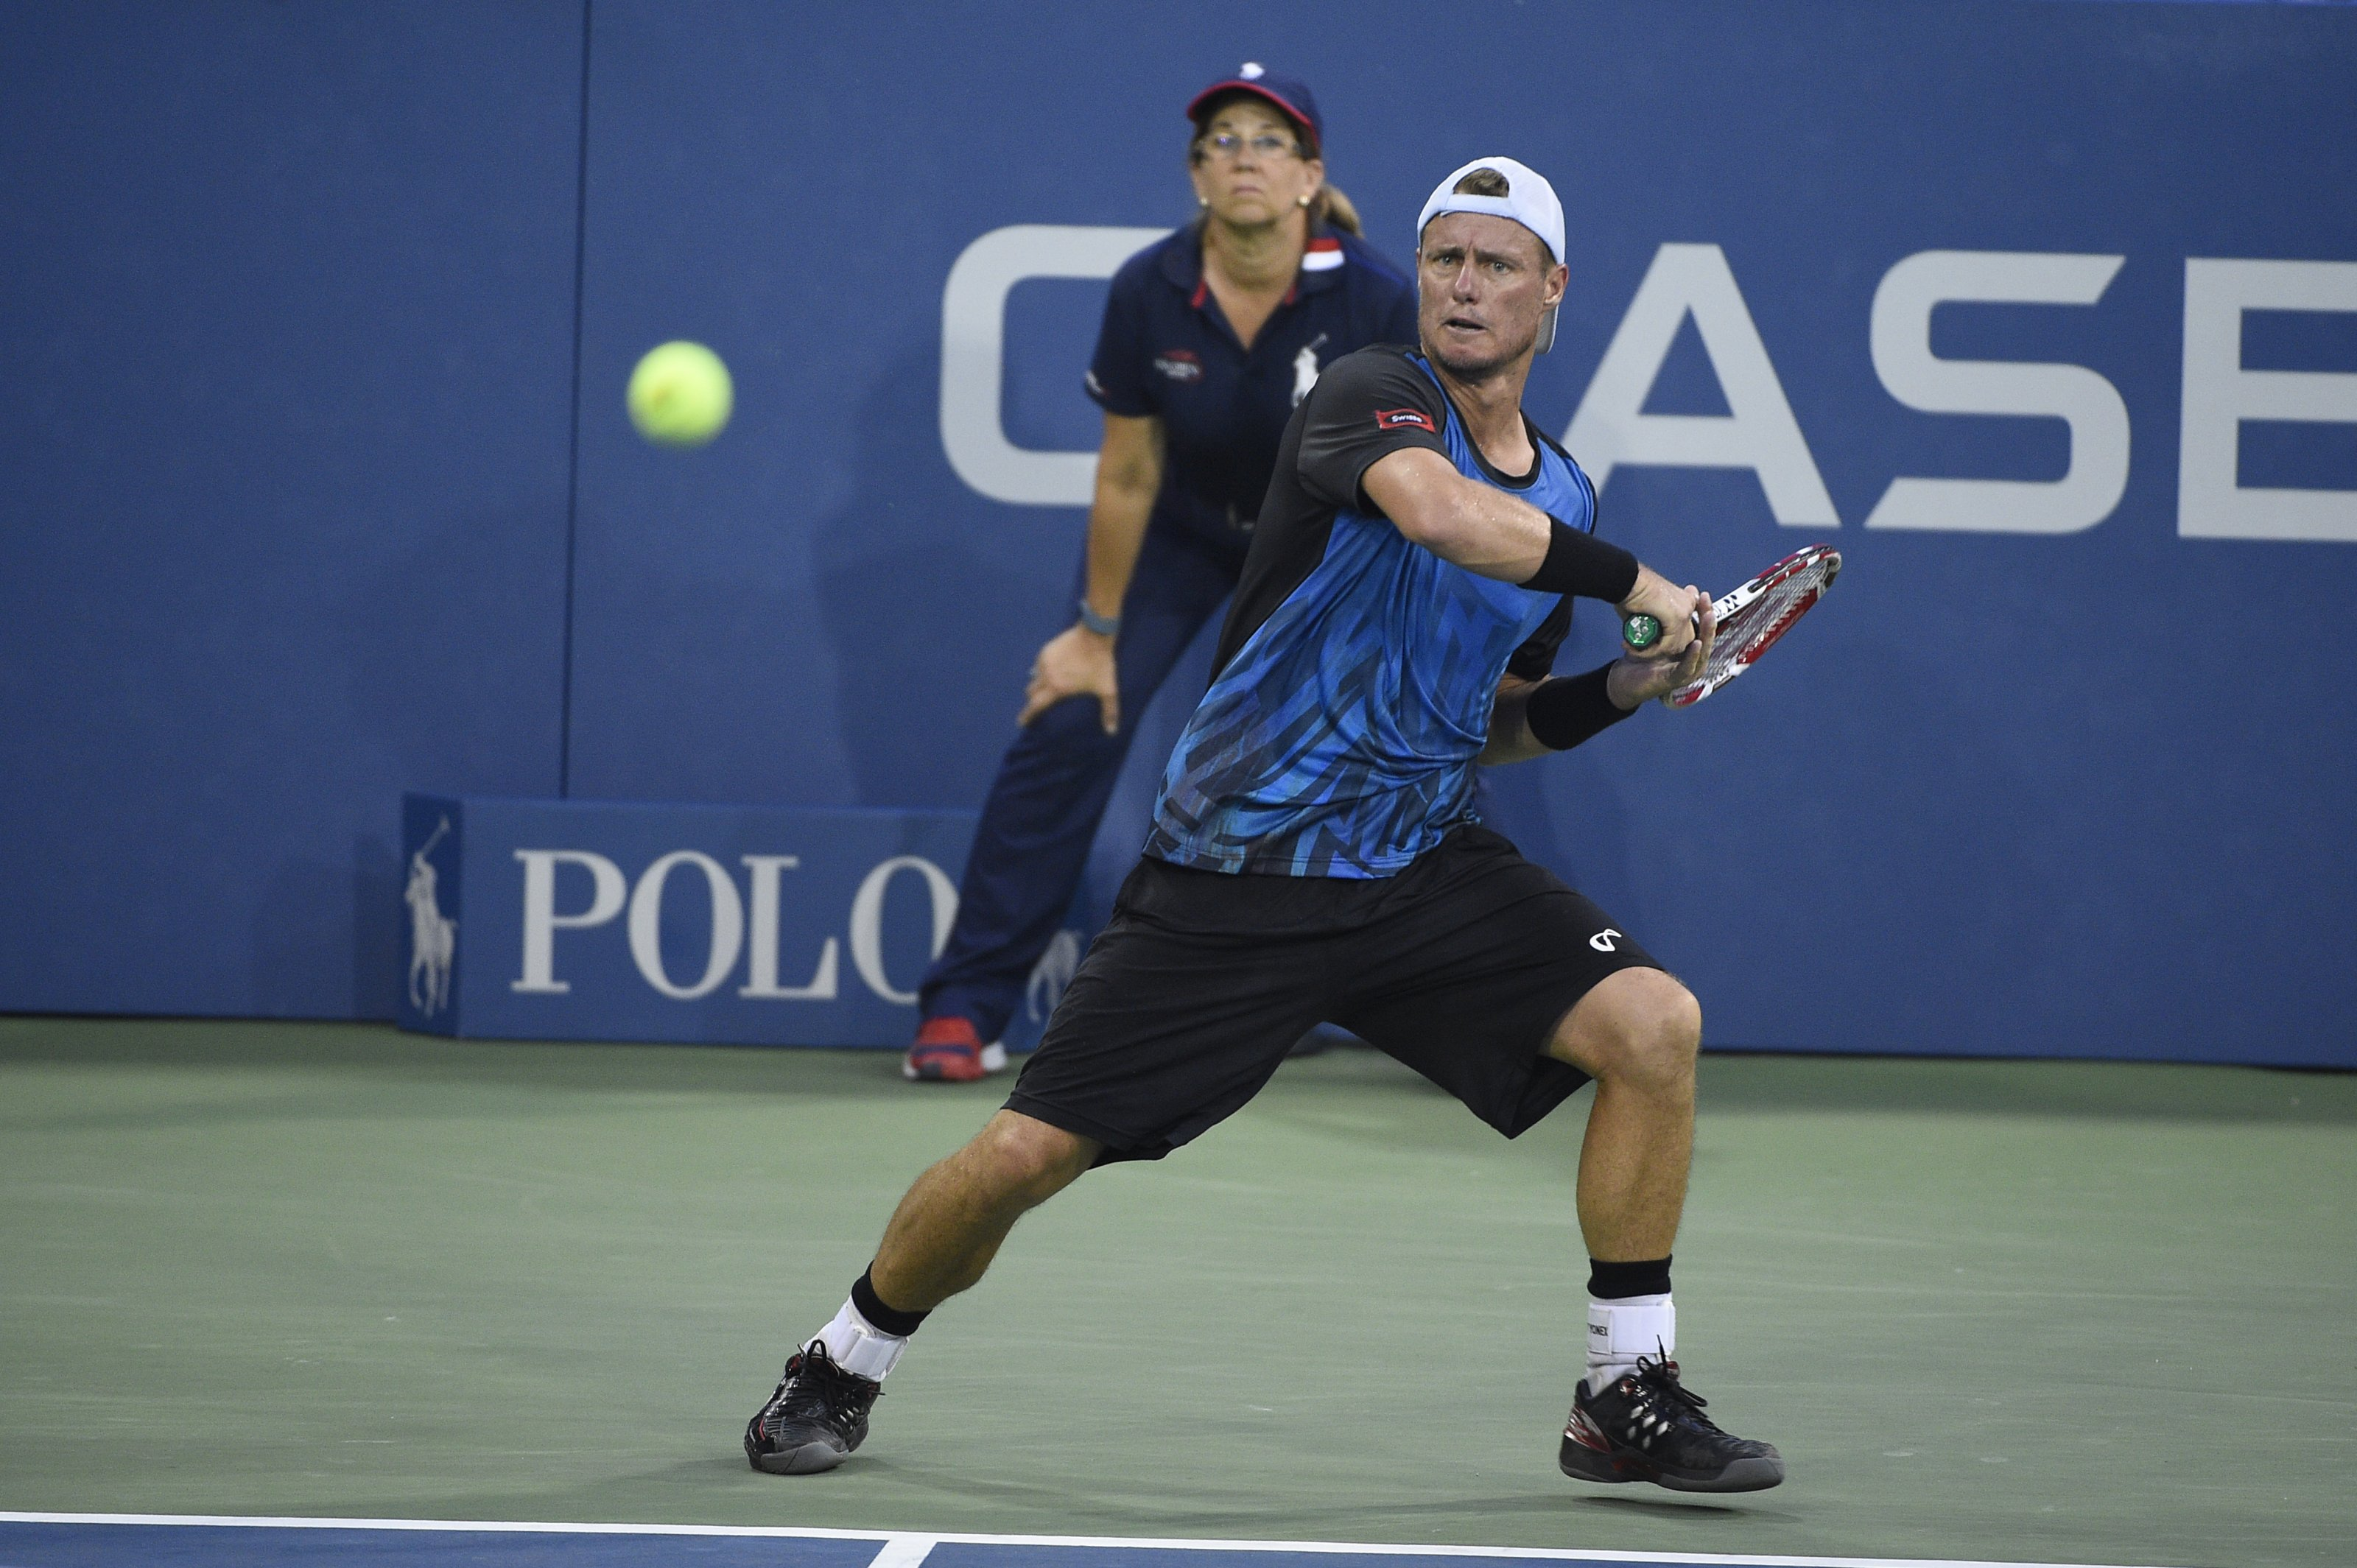 Lleython Hewitt of Australia plays his second round match at the US Open at the USTA Billie Jean King National Tennis Center in the Flushing neighborhood of the Queens borough of New York City, NY, USA on September 3, 2015. Photo by Corinne Dubreuil/ABACAPRESS.COM